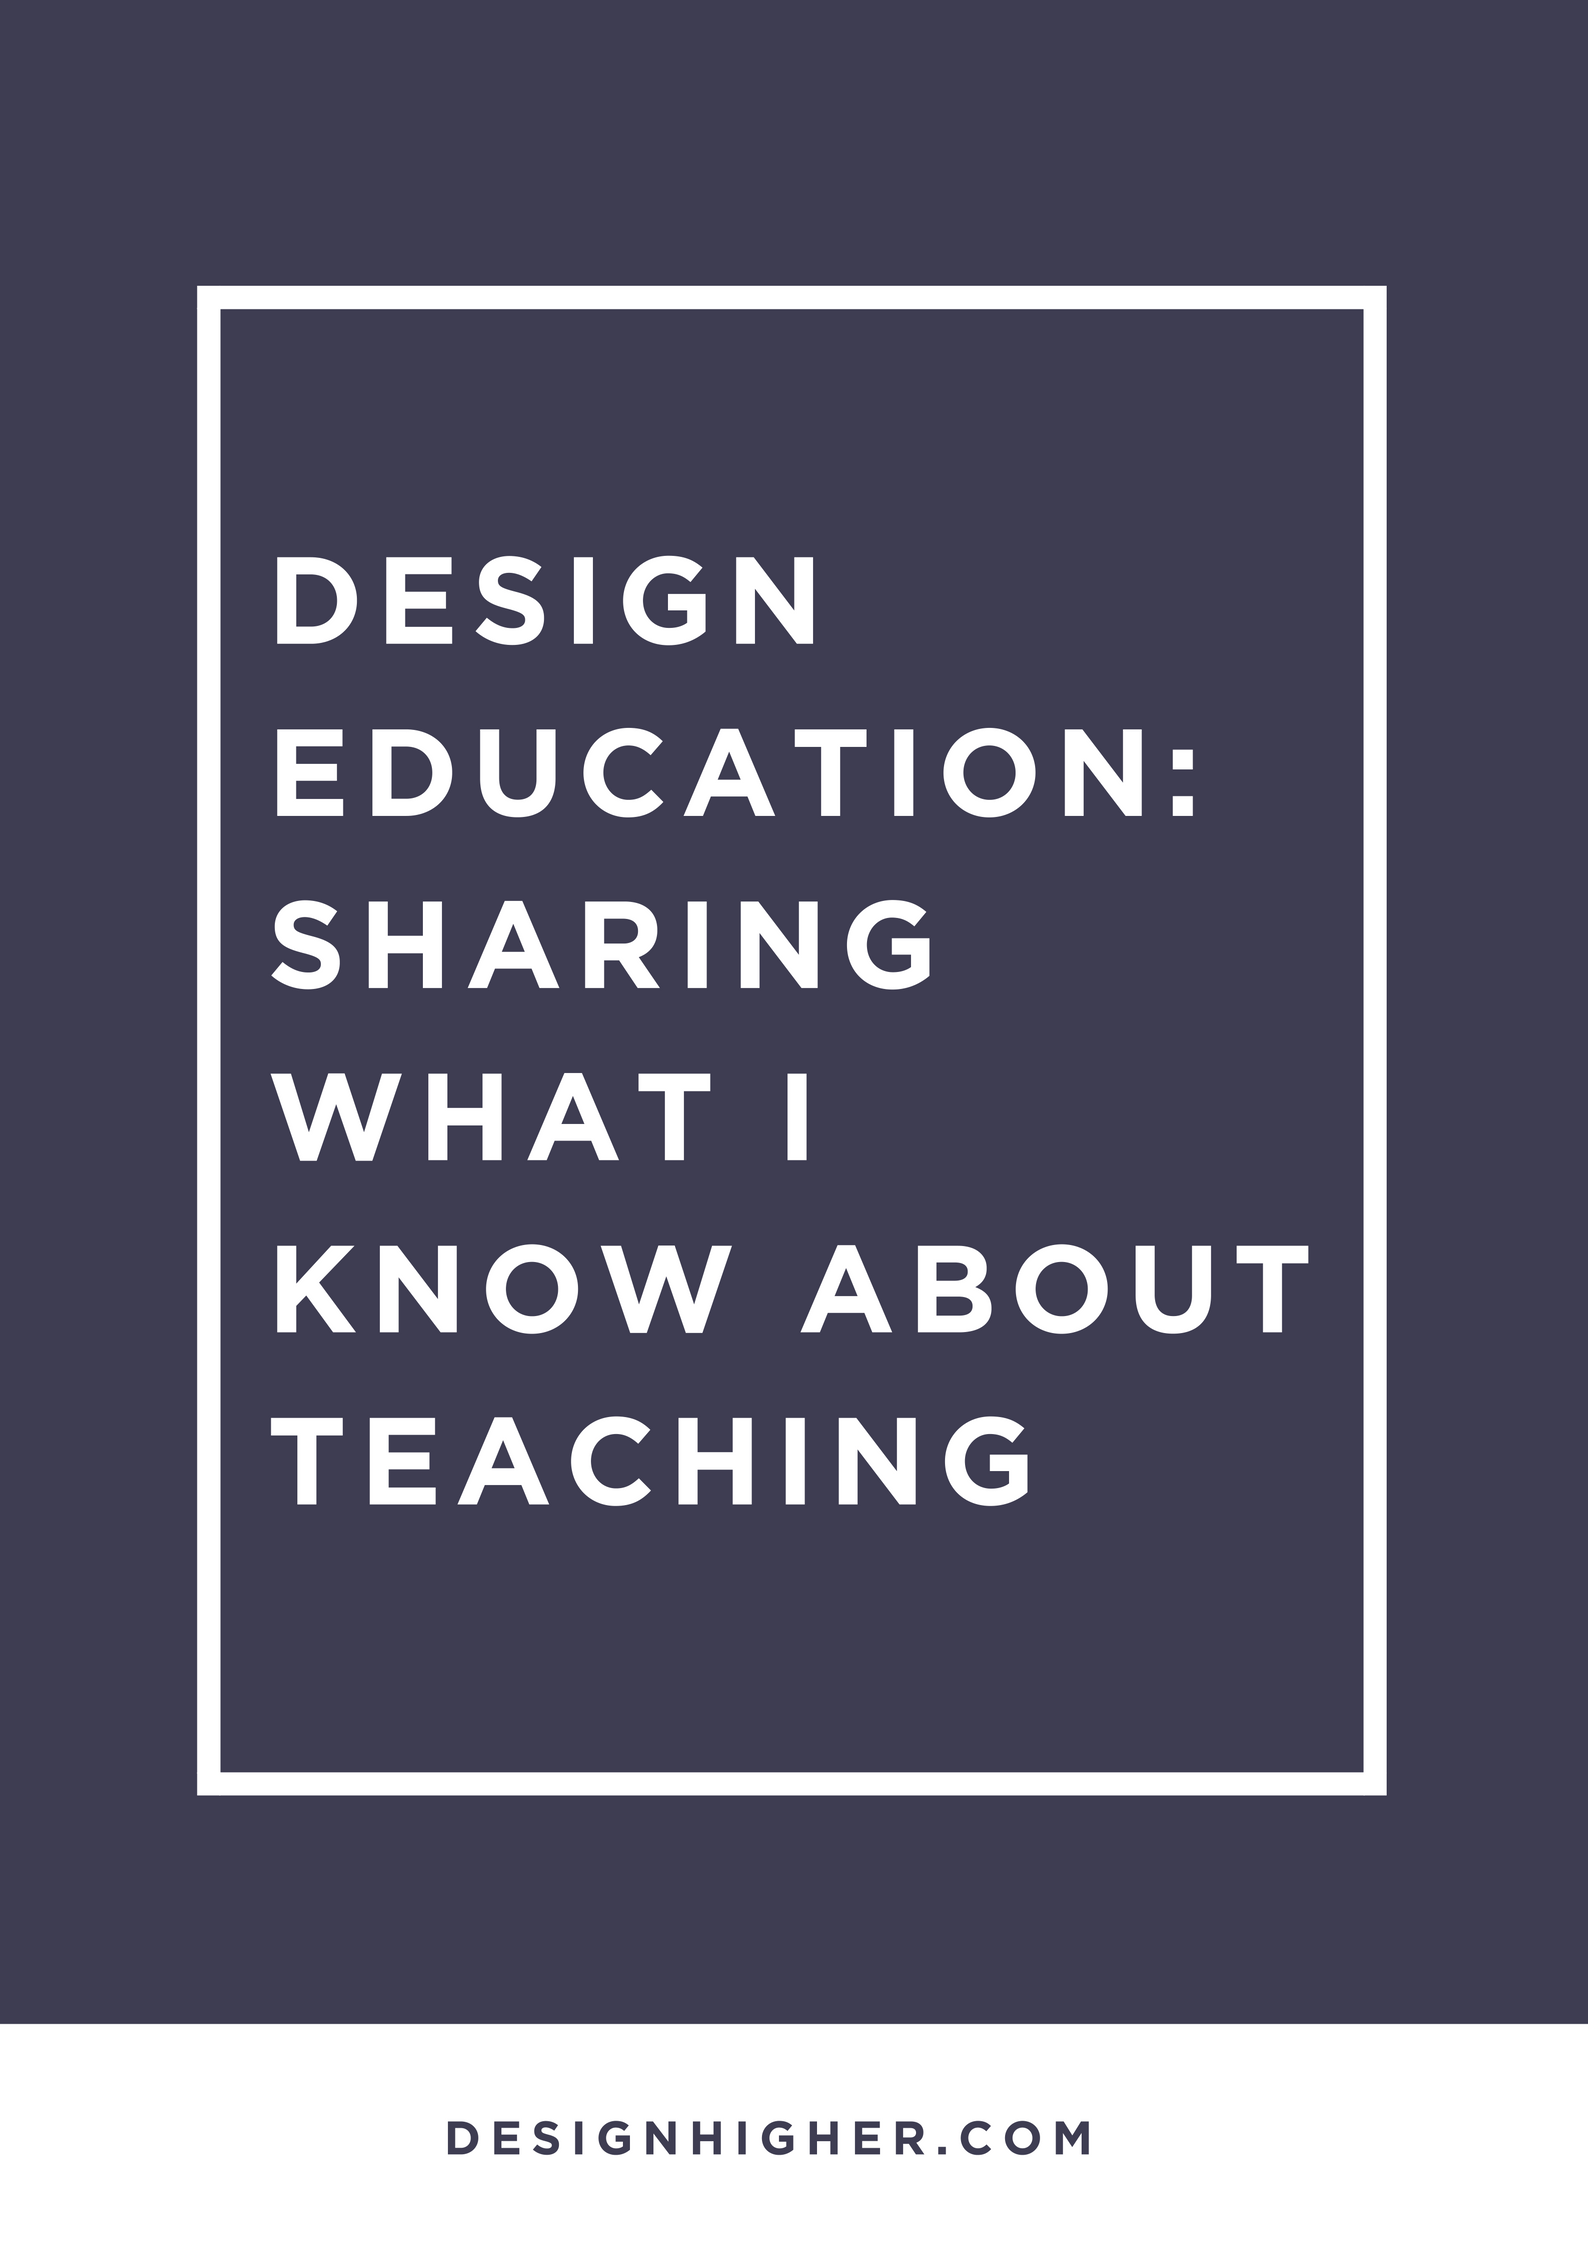 Design Education: Sharing what I know about teaching // designhigher.com #design #education